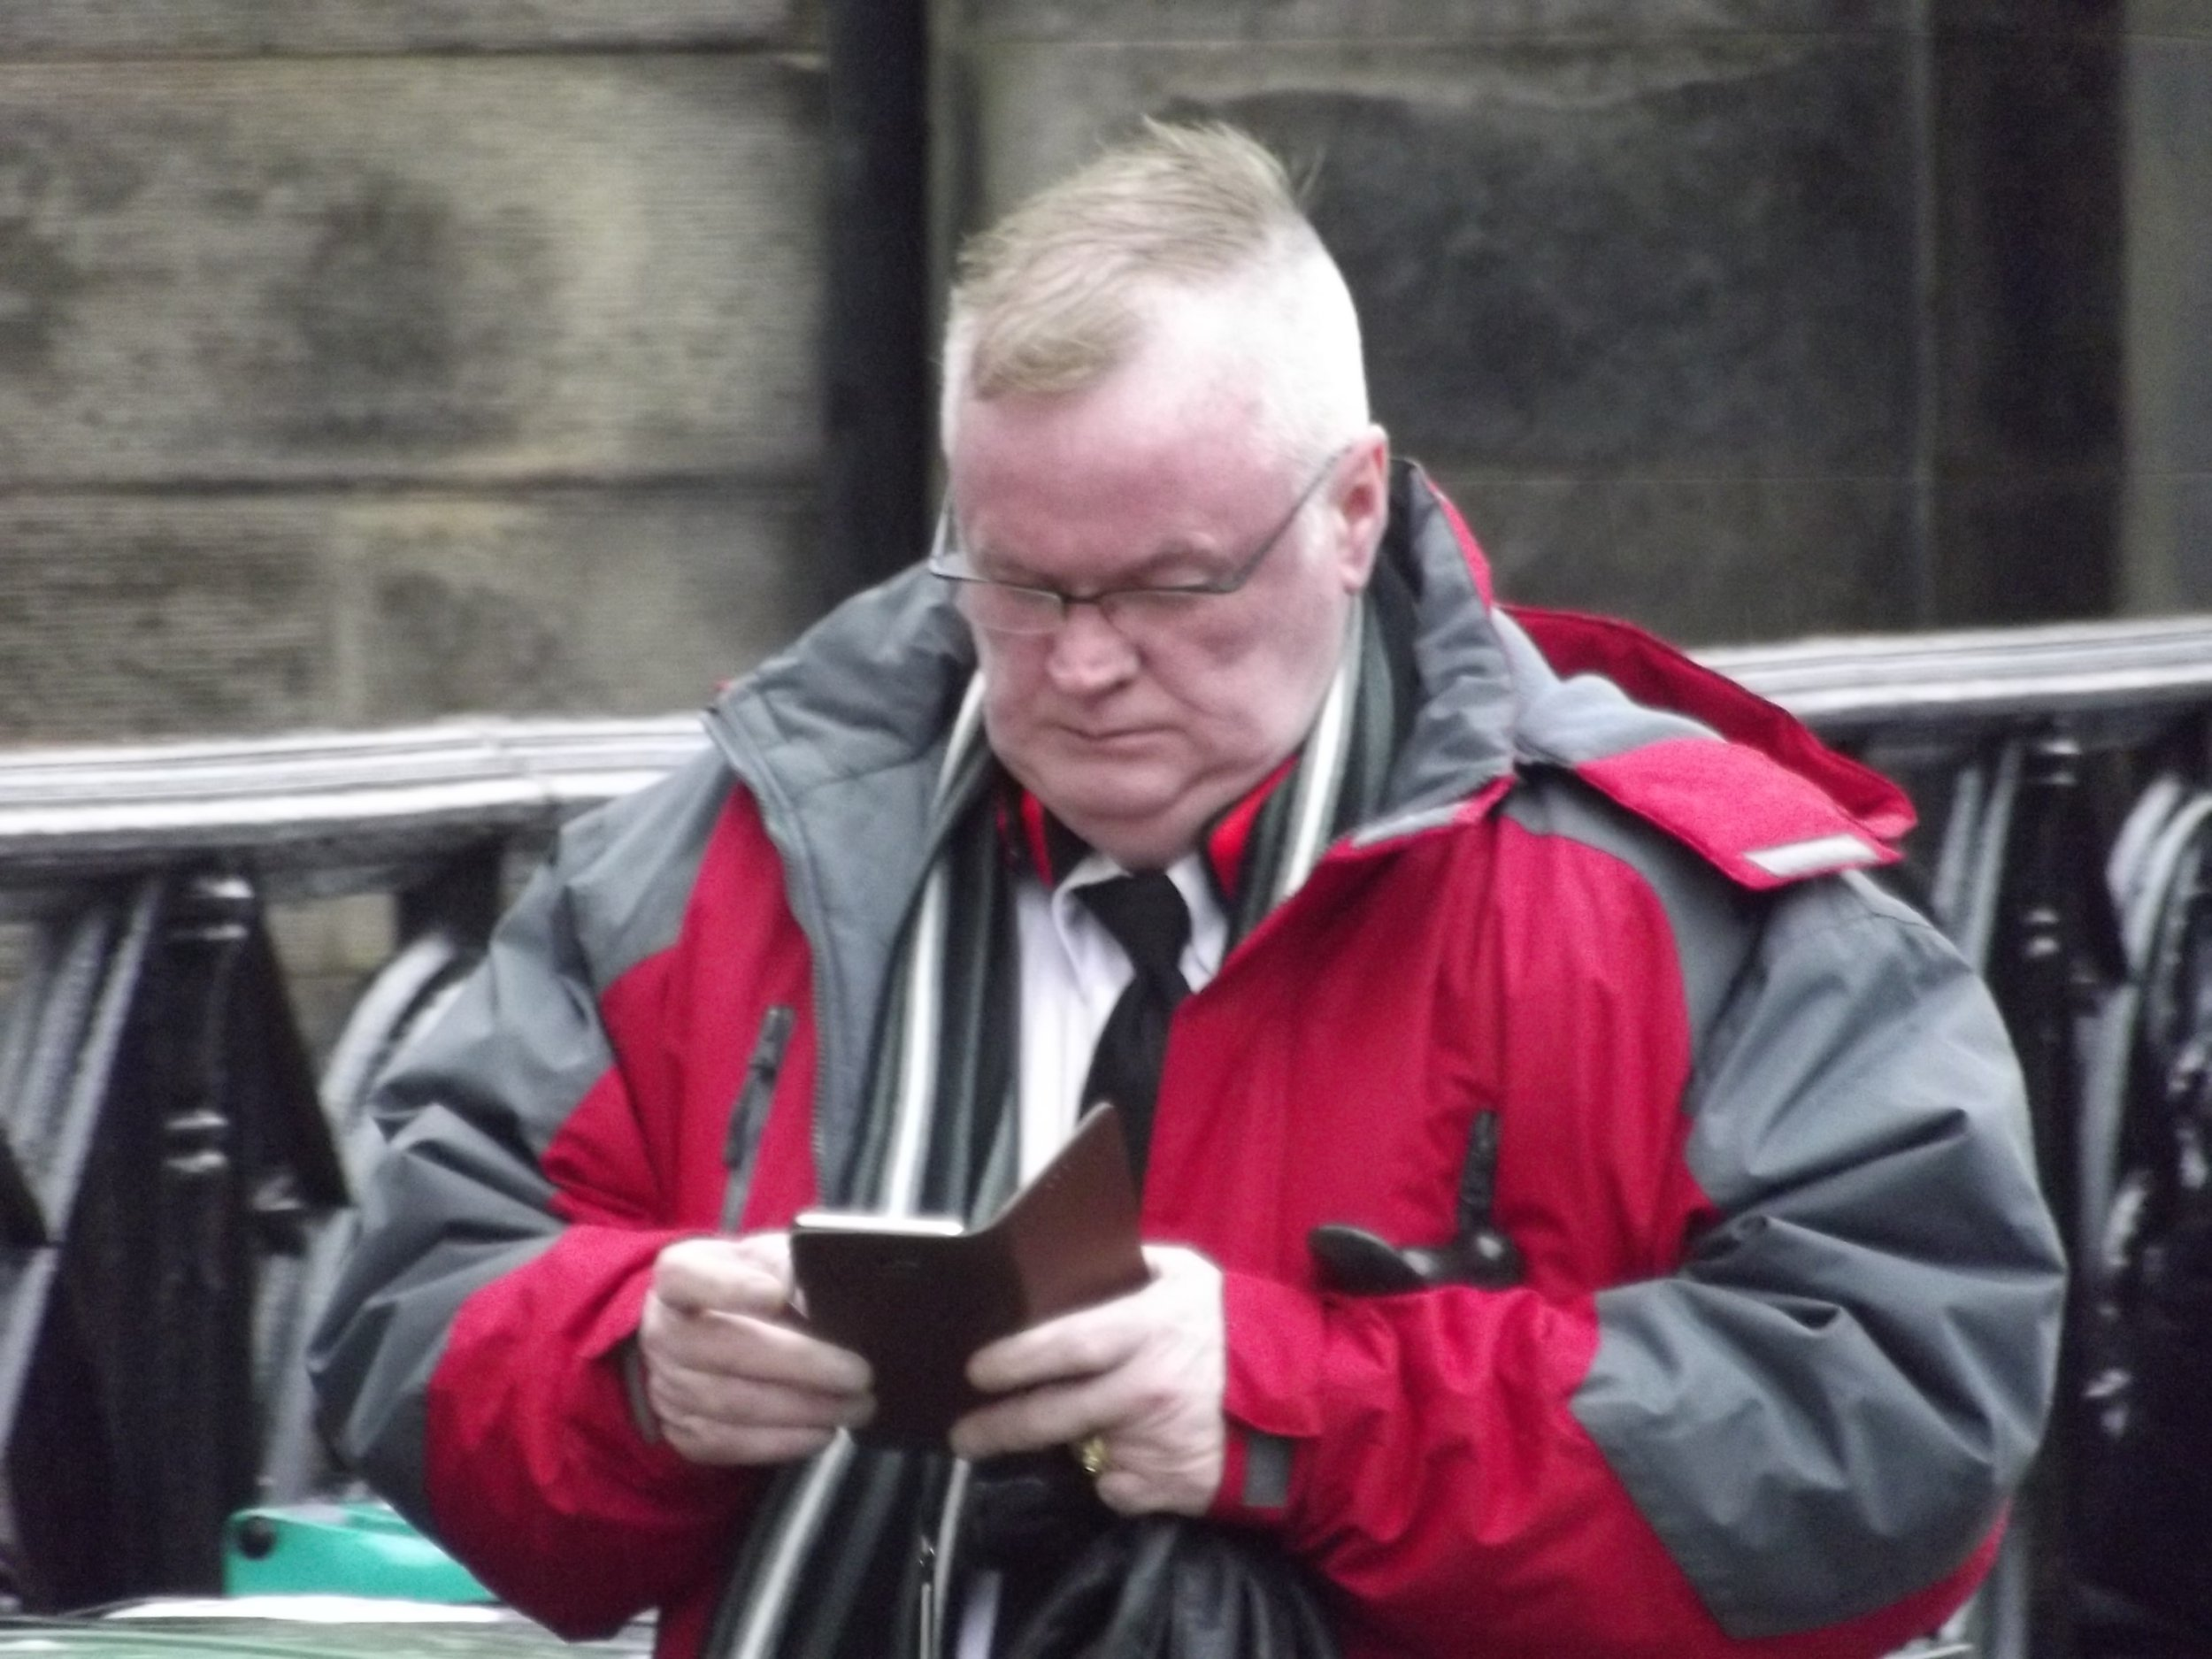 A man has admitted hiding the body of his dead aunt and continuing to claim benefits for her care. John MacLeod stored the body of his elderly aunt Mina MacLeod over an eight-month period after she had died at an address at Madeira Street, in Edinburgh. Carer MacLeod, of Kirkintilloch, East Dunbartonshire, then continued to receive cash sums of Income Support, Carers Allowance and Disability Living Allowance he was receiving for looking after the woman. It is not yet known how much in benefits MacLeod has claimed illegally.